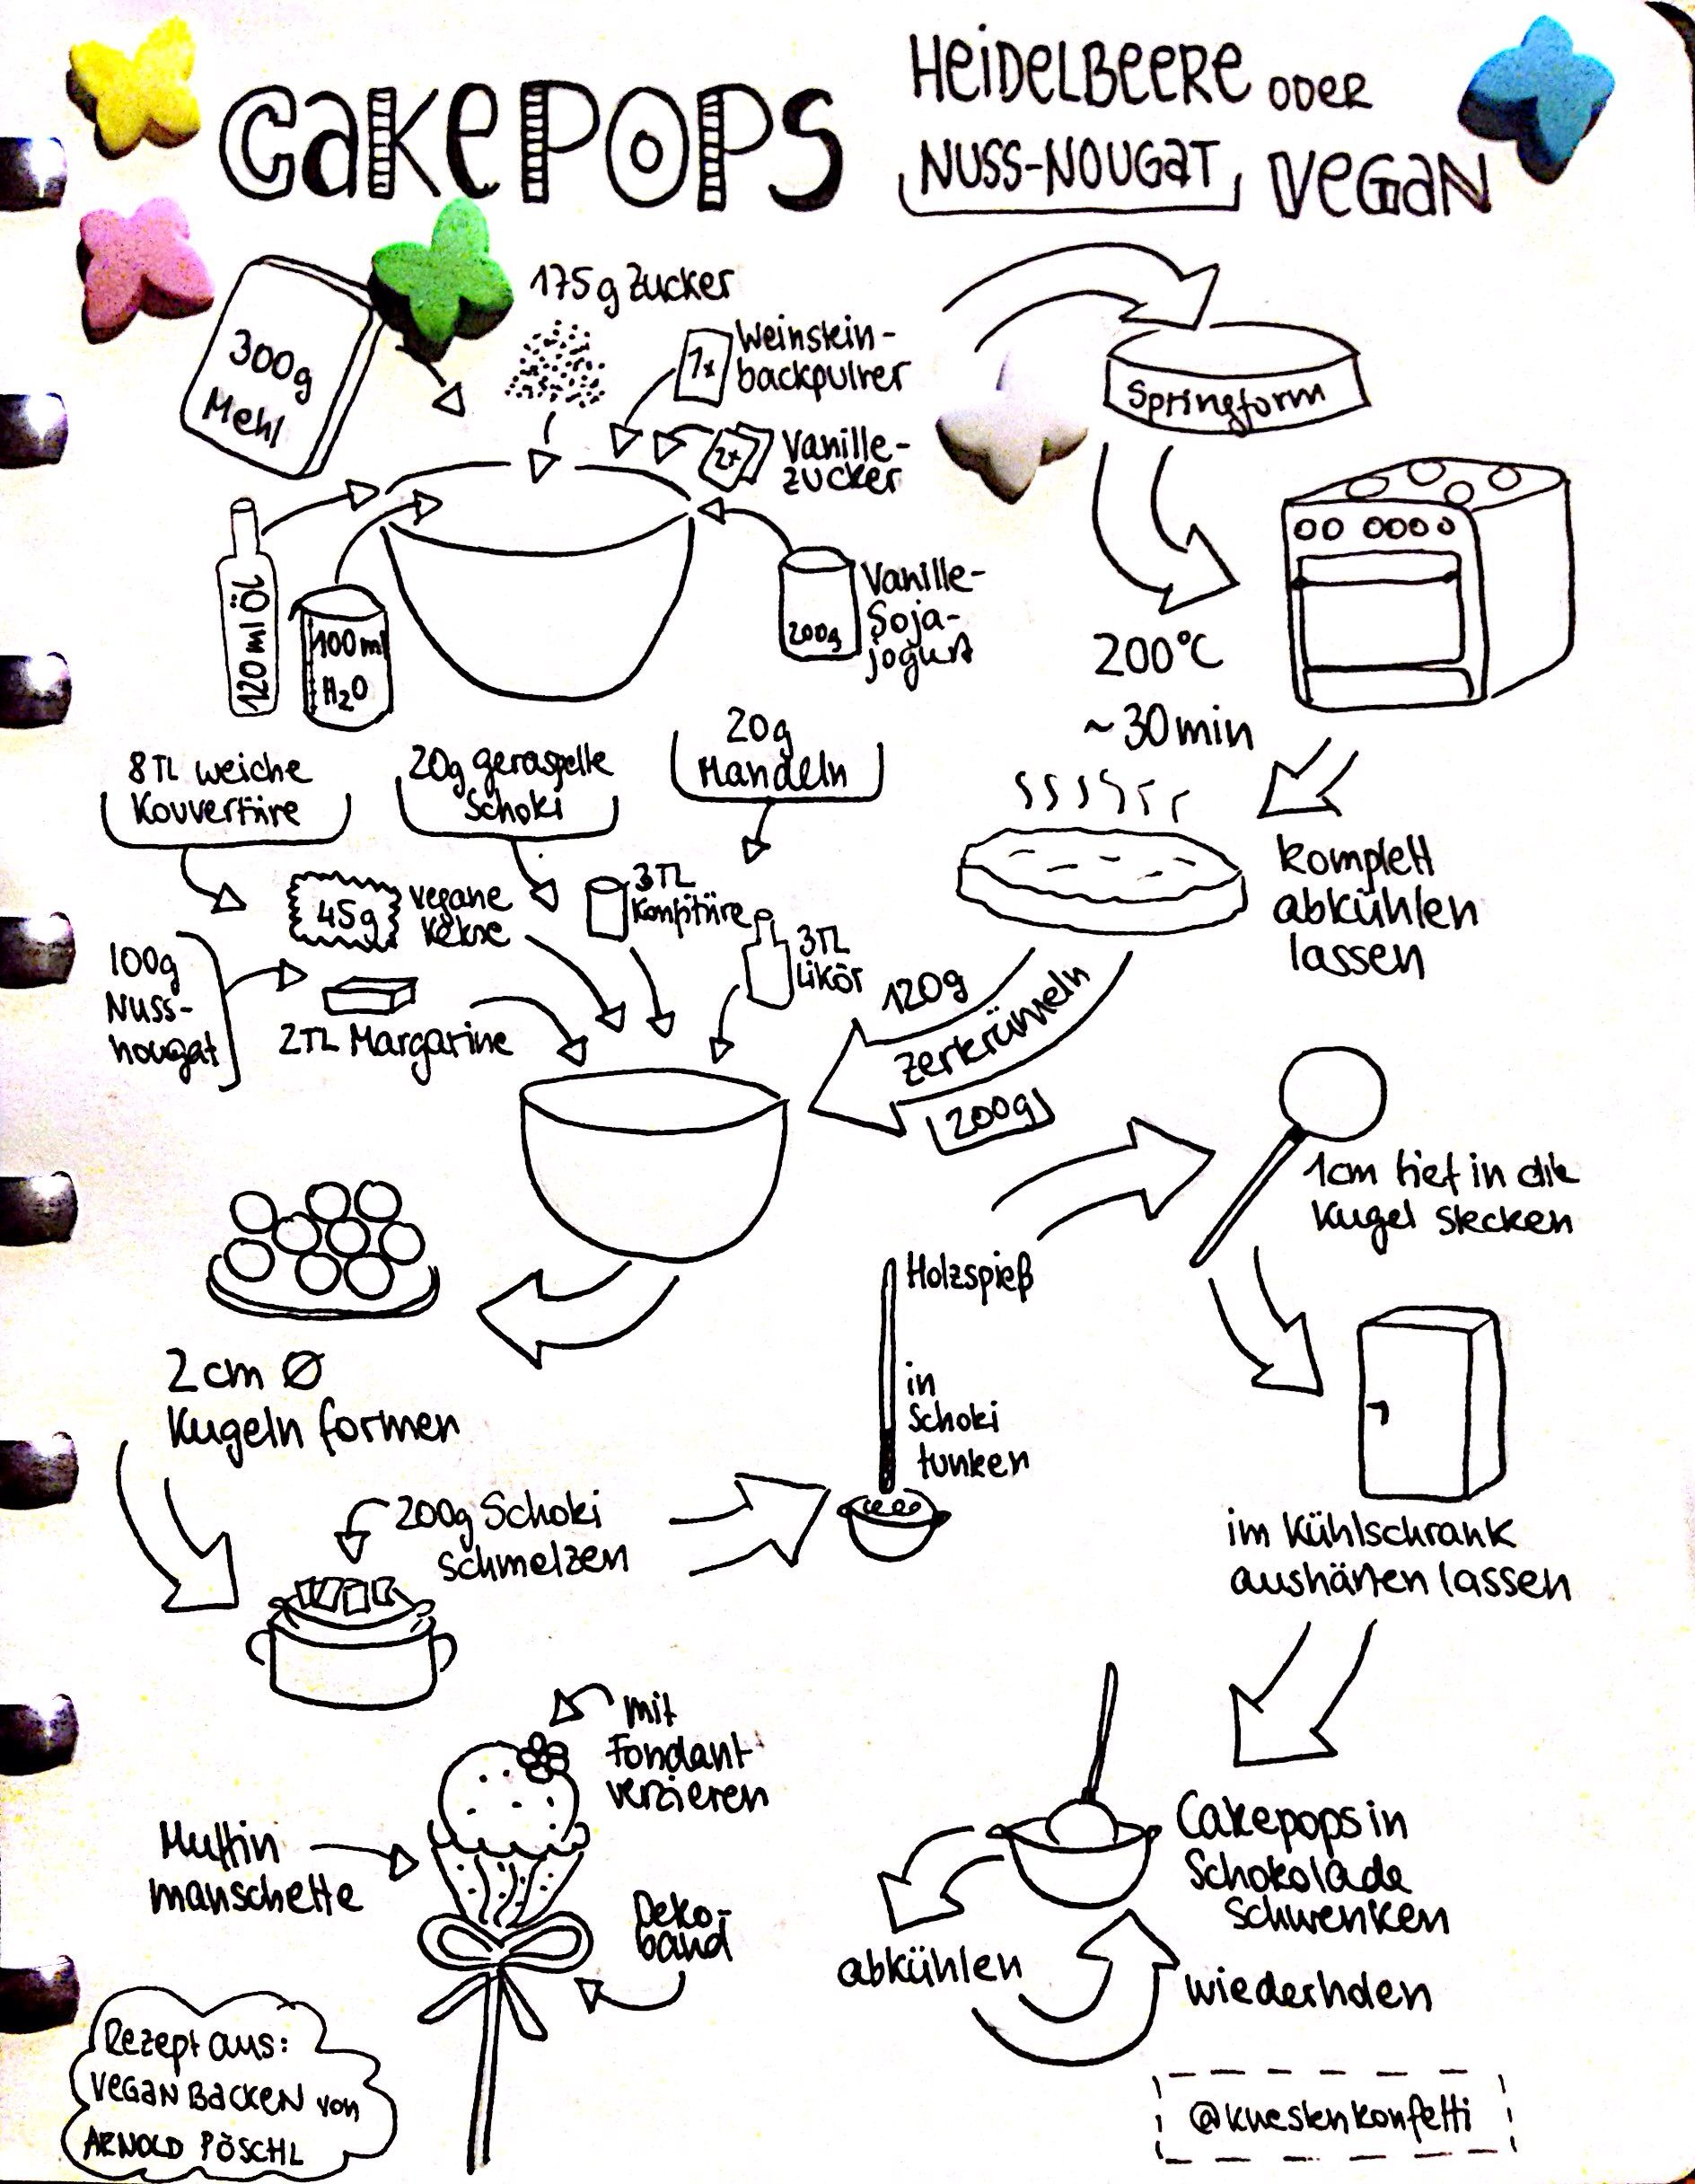 veganes cakepops rezept sketchnote sketchnotes sketchrecipe doodles recipe cakepops. Black Bedroom Furniture Sets. Home Design Ideas